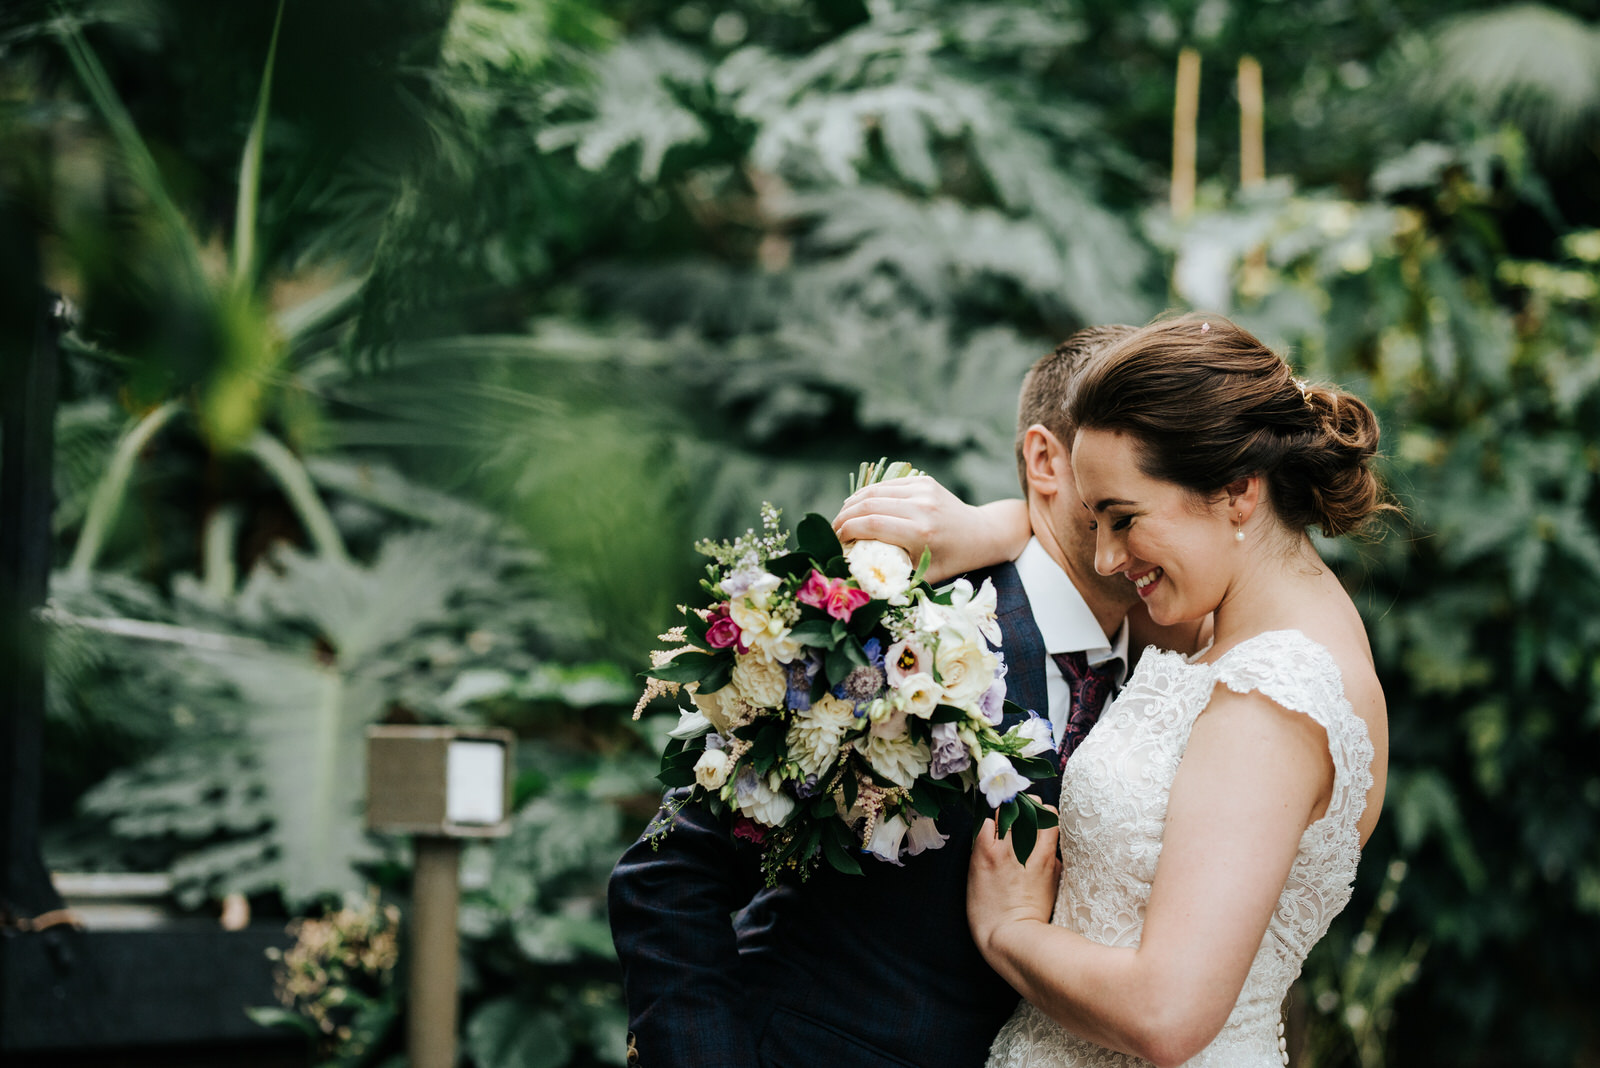 Groom whispers into brides ear as she smiles while hugging him w